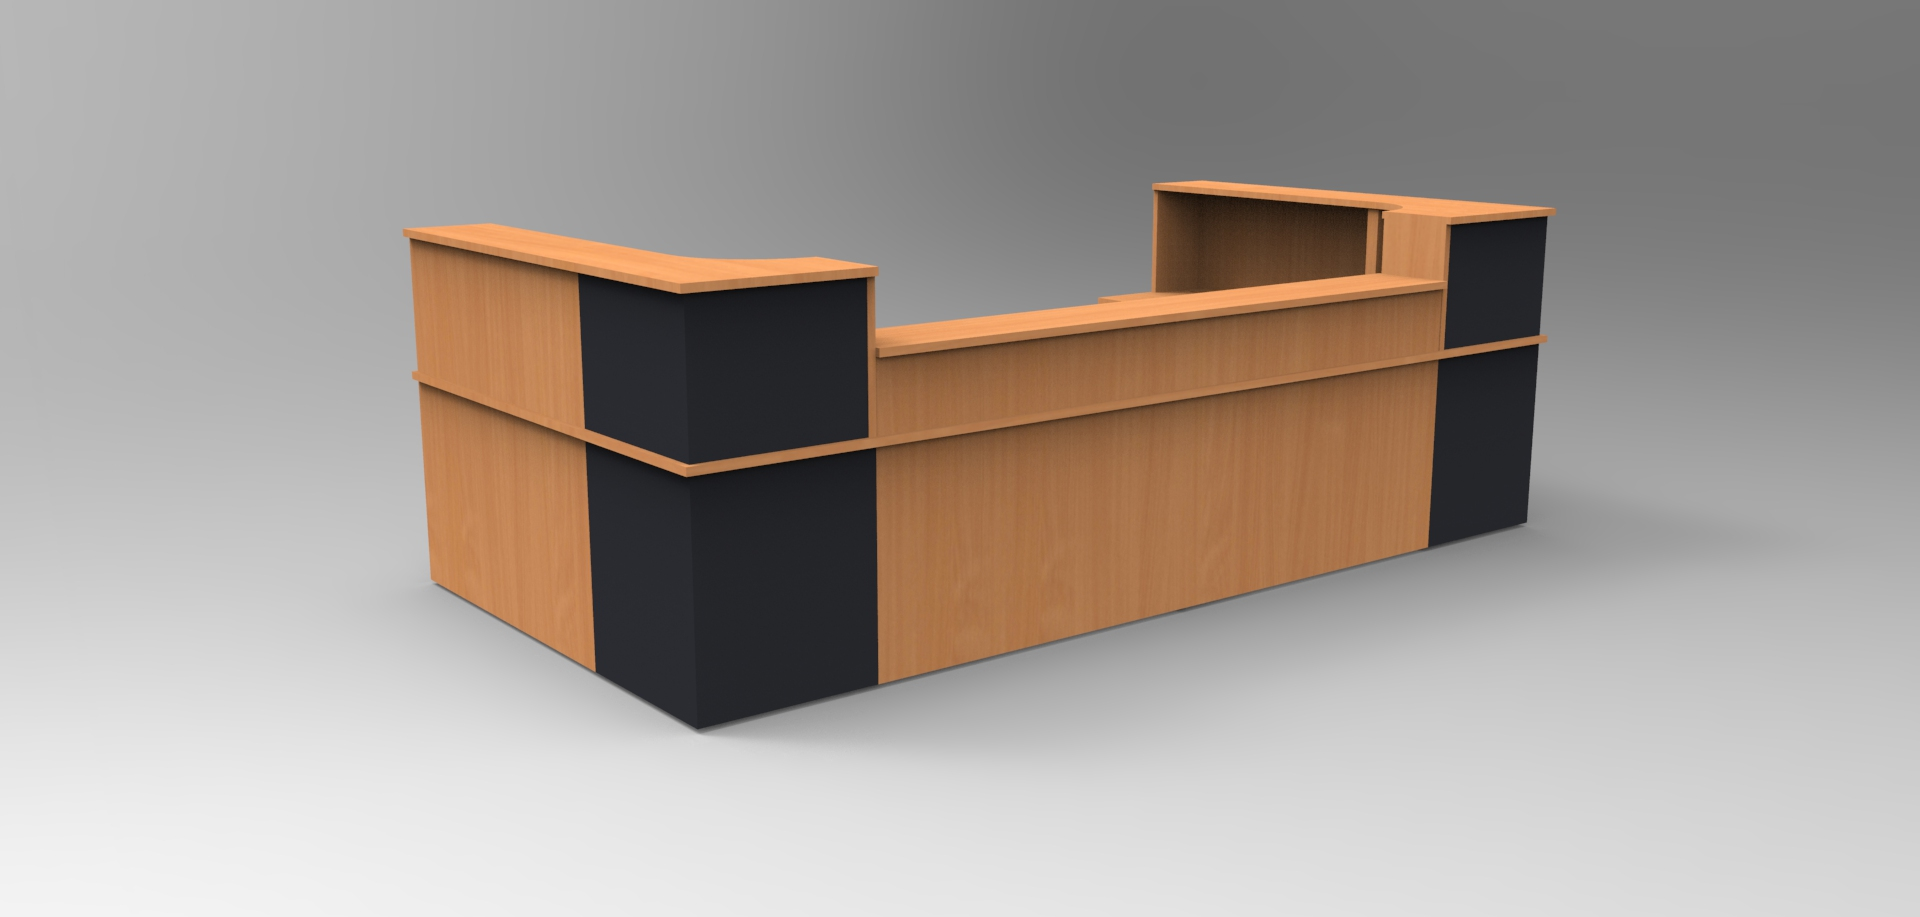 Image 32C - Classic reception desk - Beech & Graphite with a half height top unit